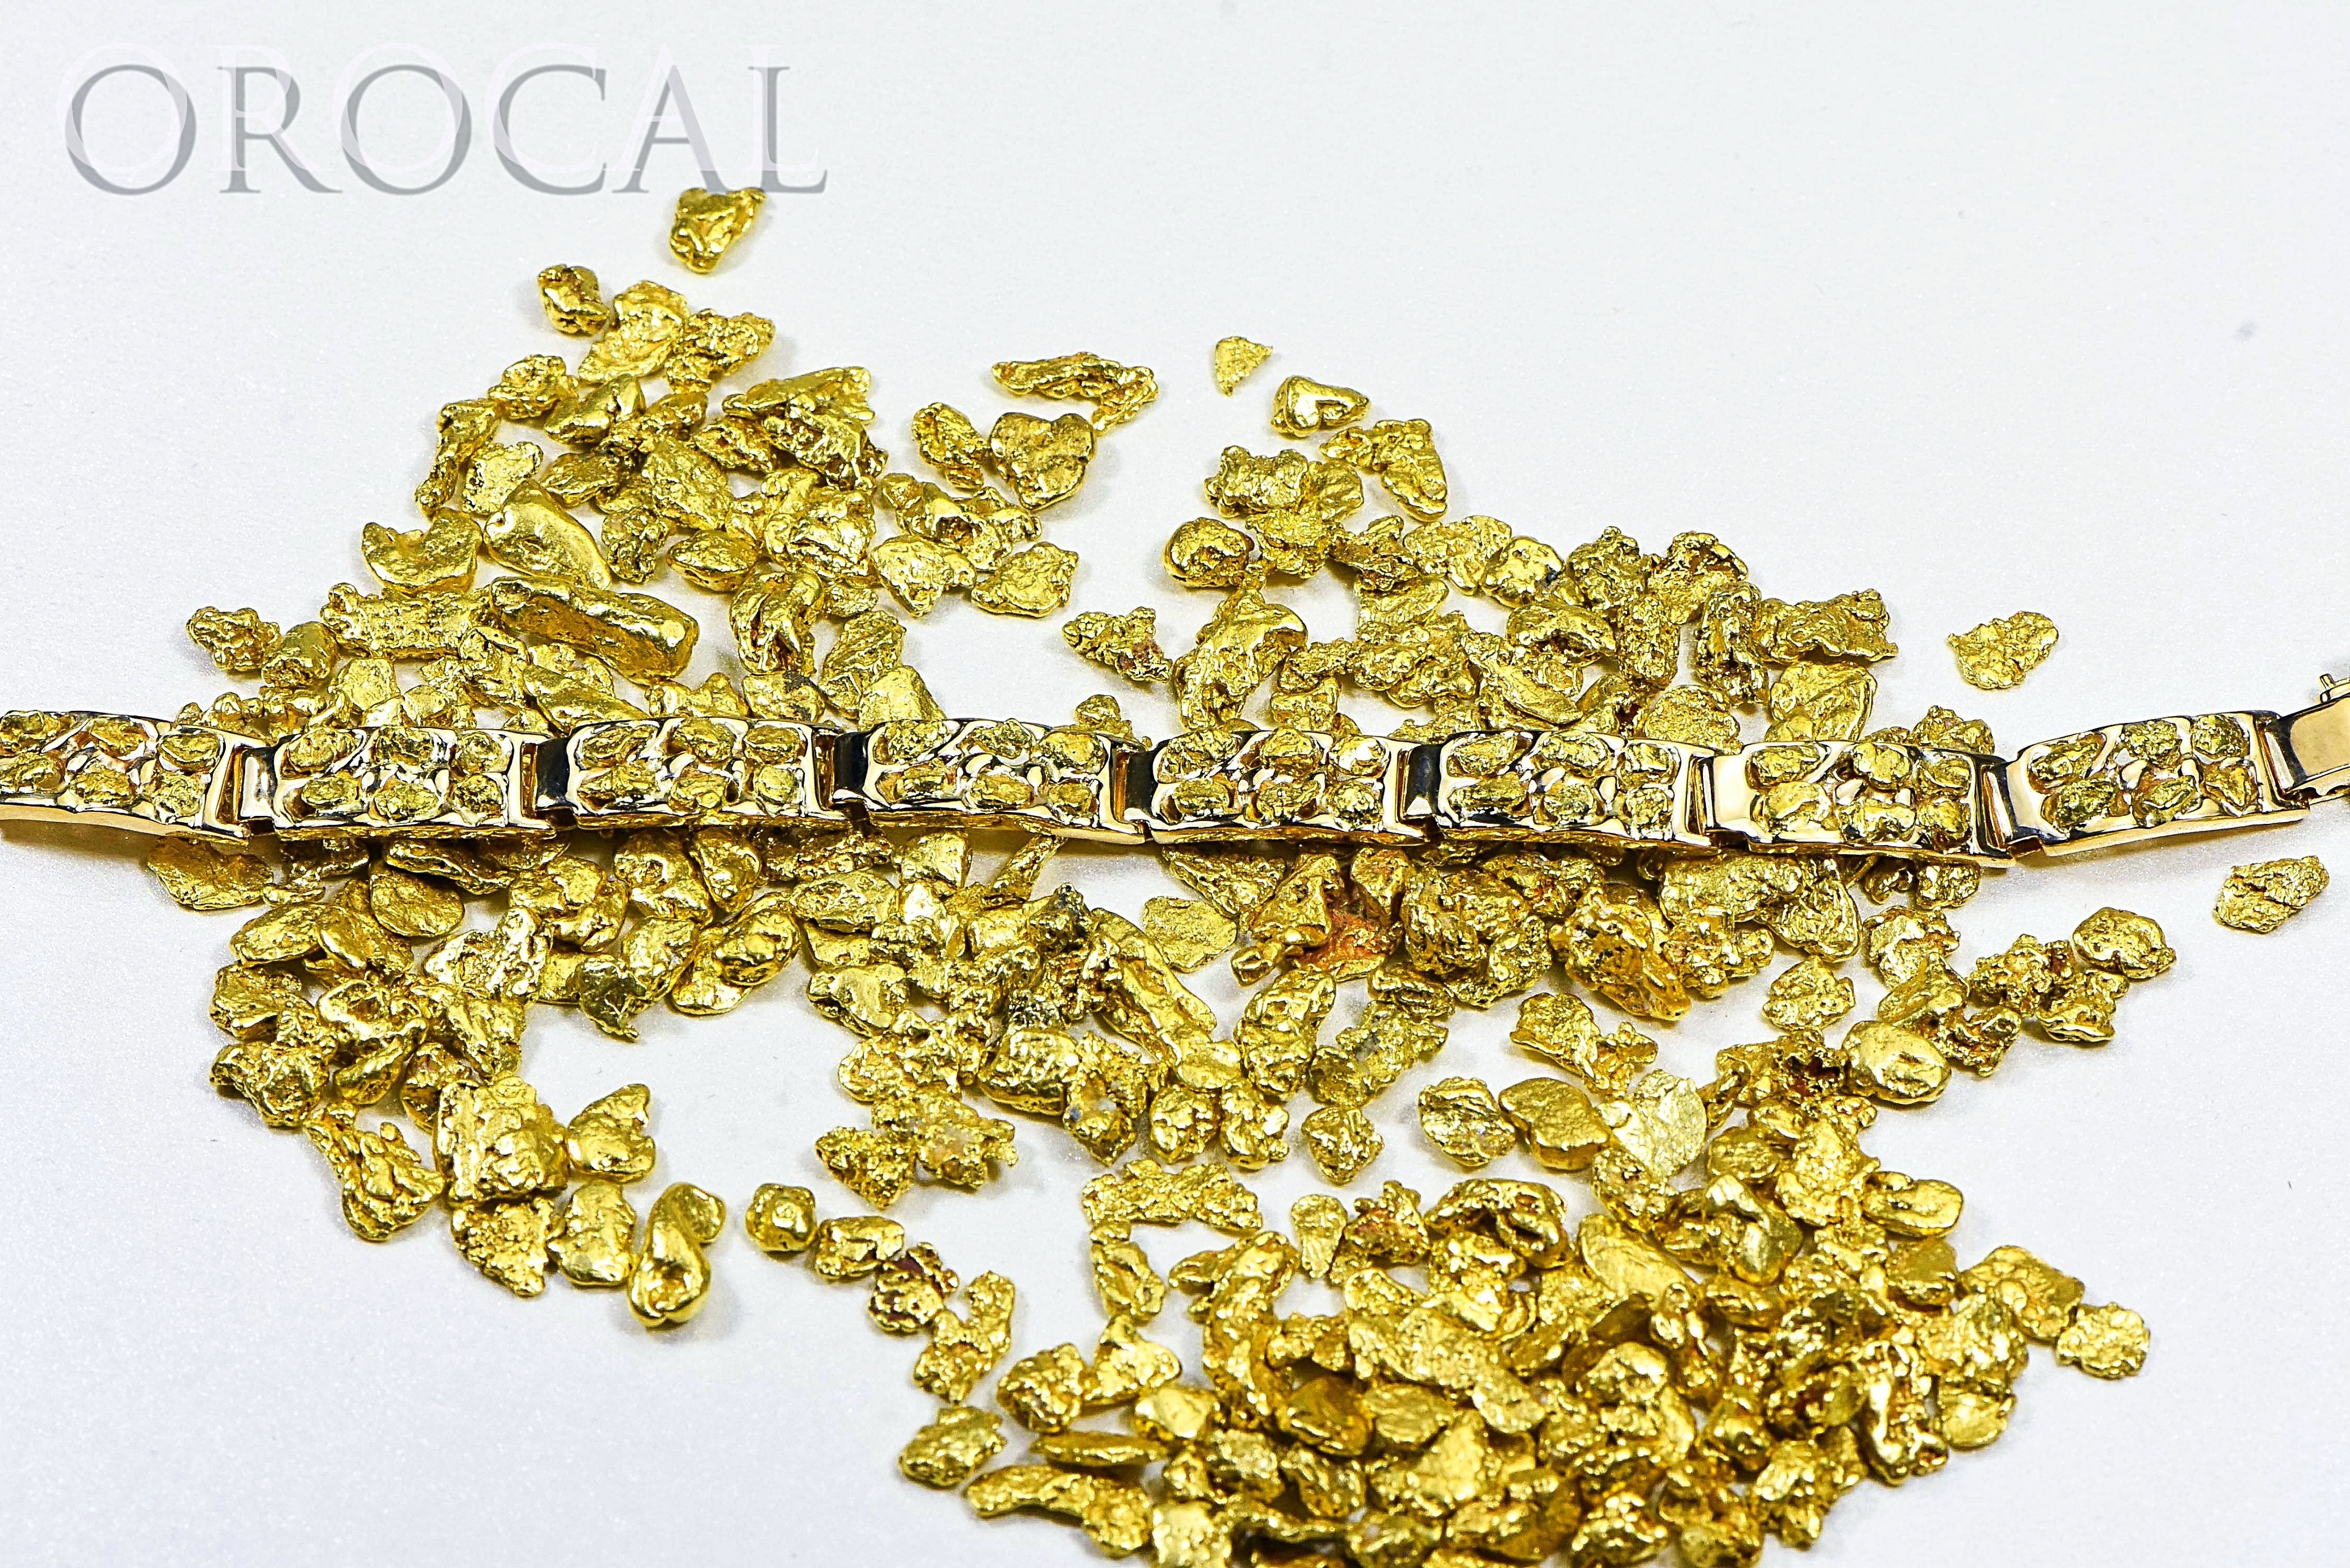 "Gold Nugget Bracelet ""Orocal"" BFFB6L9 Genuine Hand Crafted Jewelry - 14K Gold Casting"